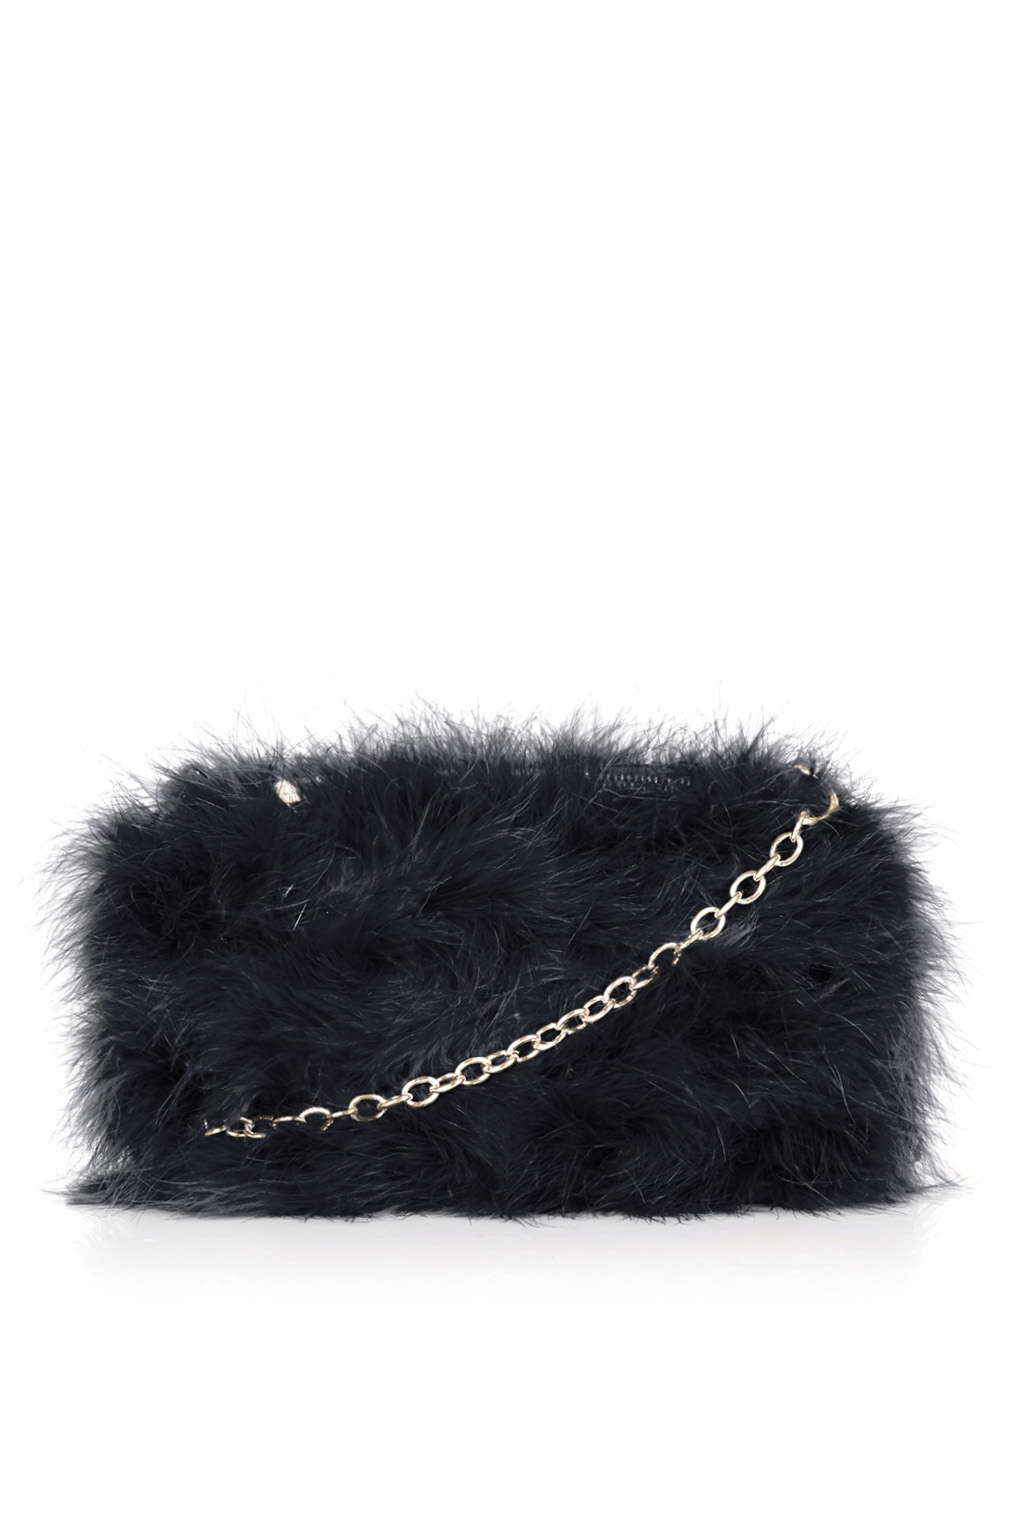 TOPSHOP Real Feather Marabou Bag in Black - Lyst d202eacd373c5